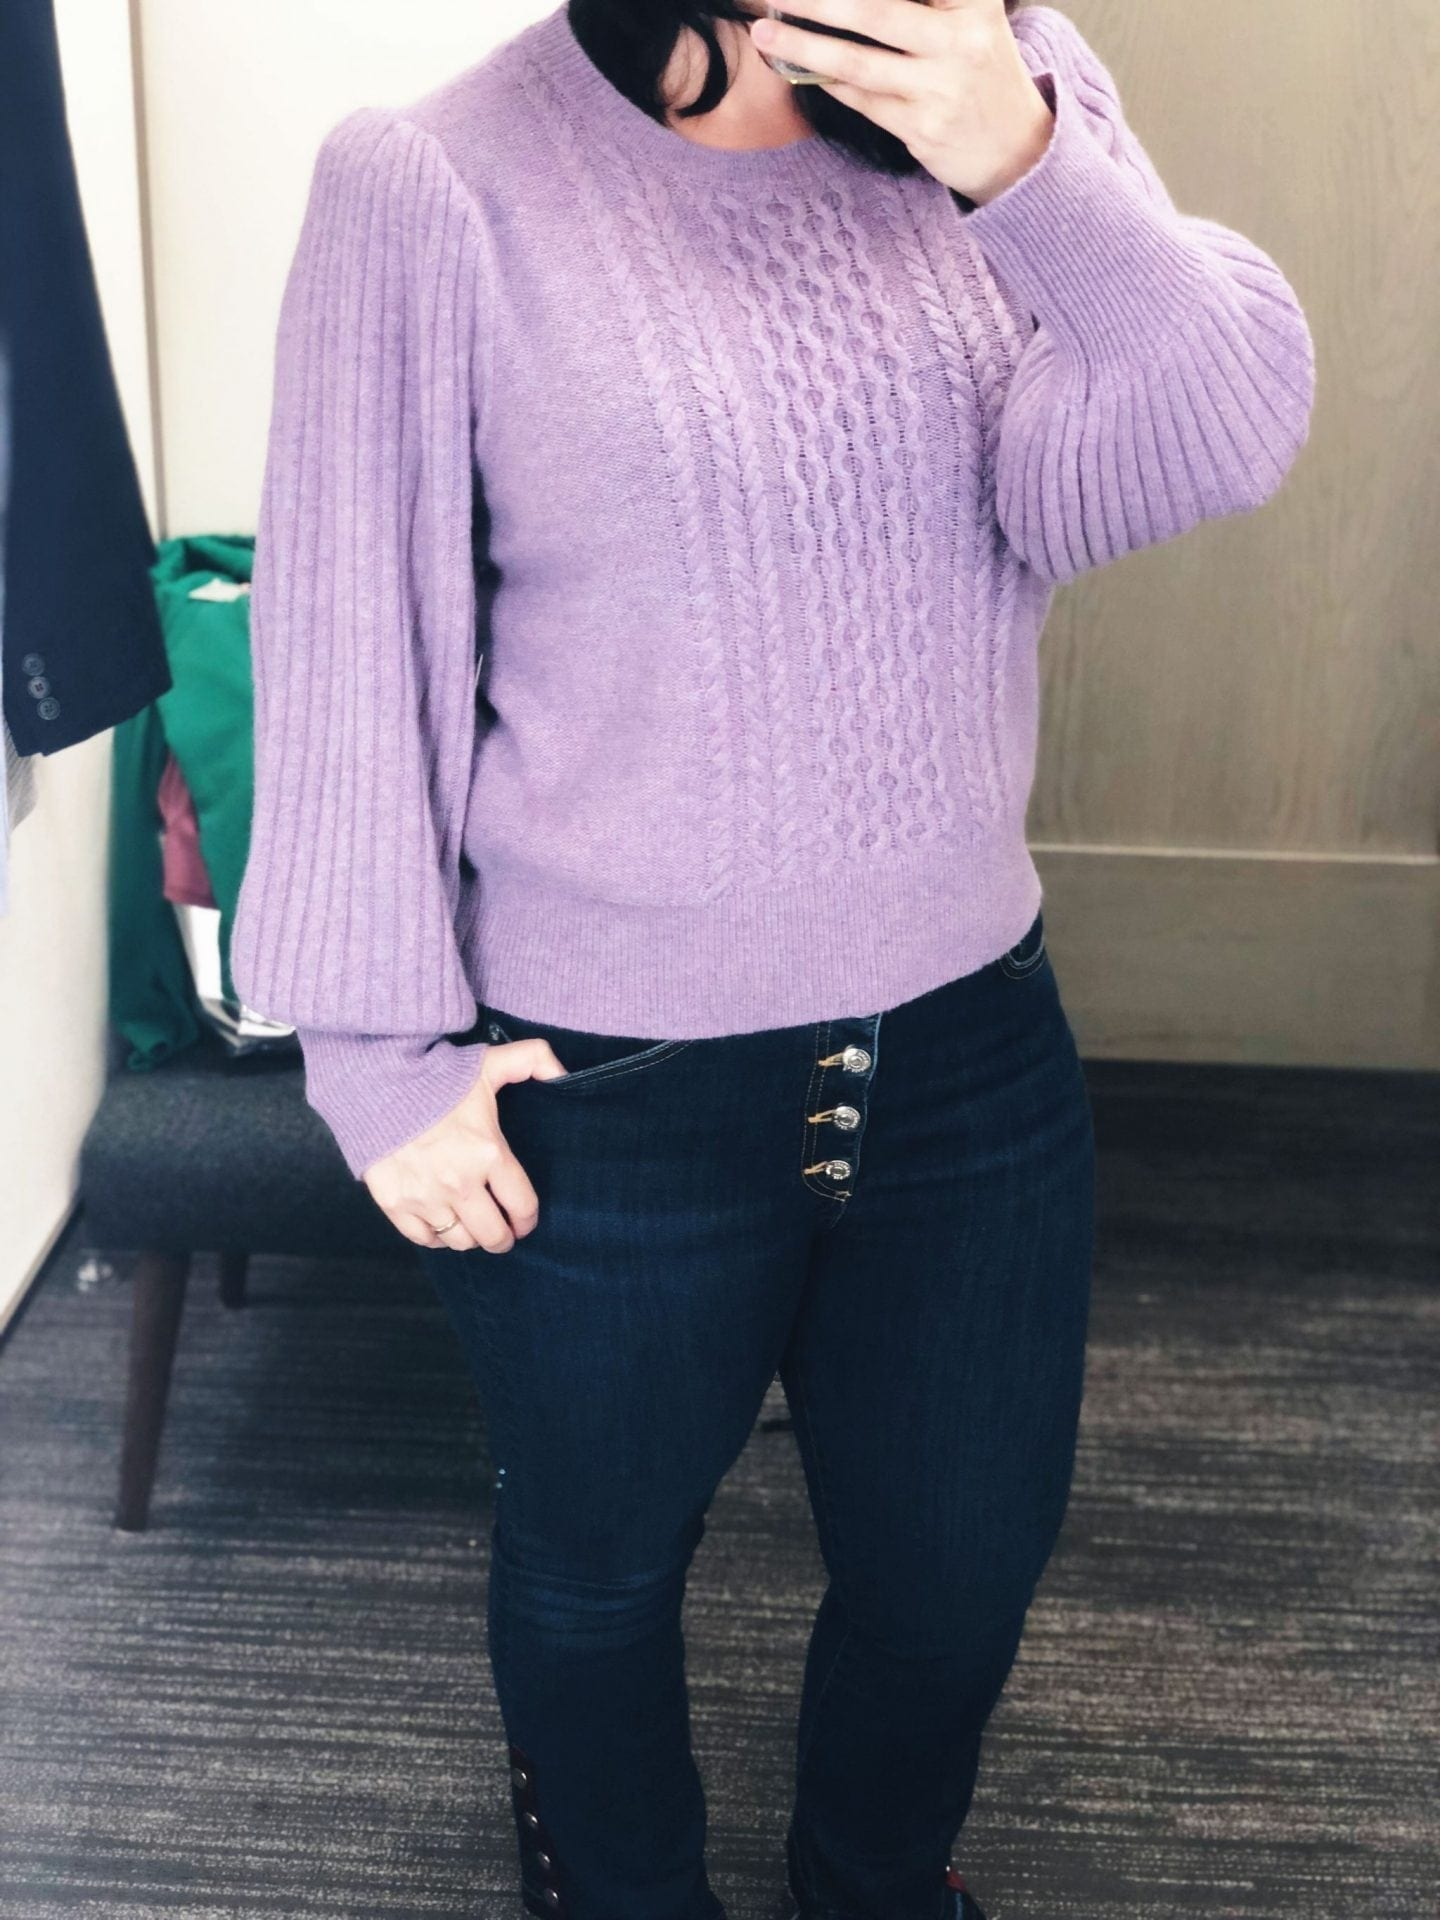 Cable Cashmere Sweater NORDSTROM SIGNATURE, Nordstrom Anniversary Sale 2018 Fitting Room Try Ons